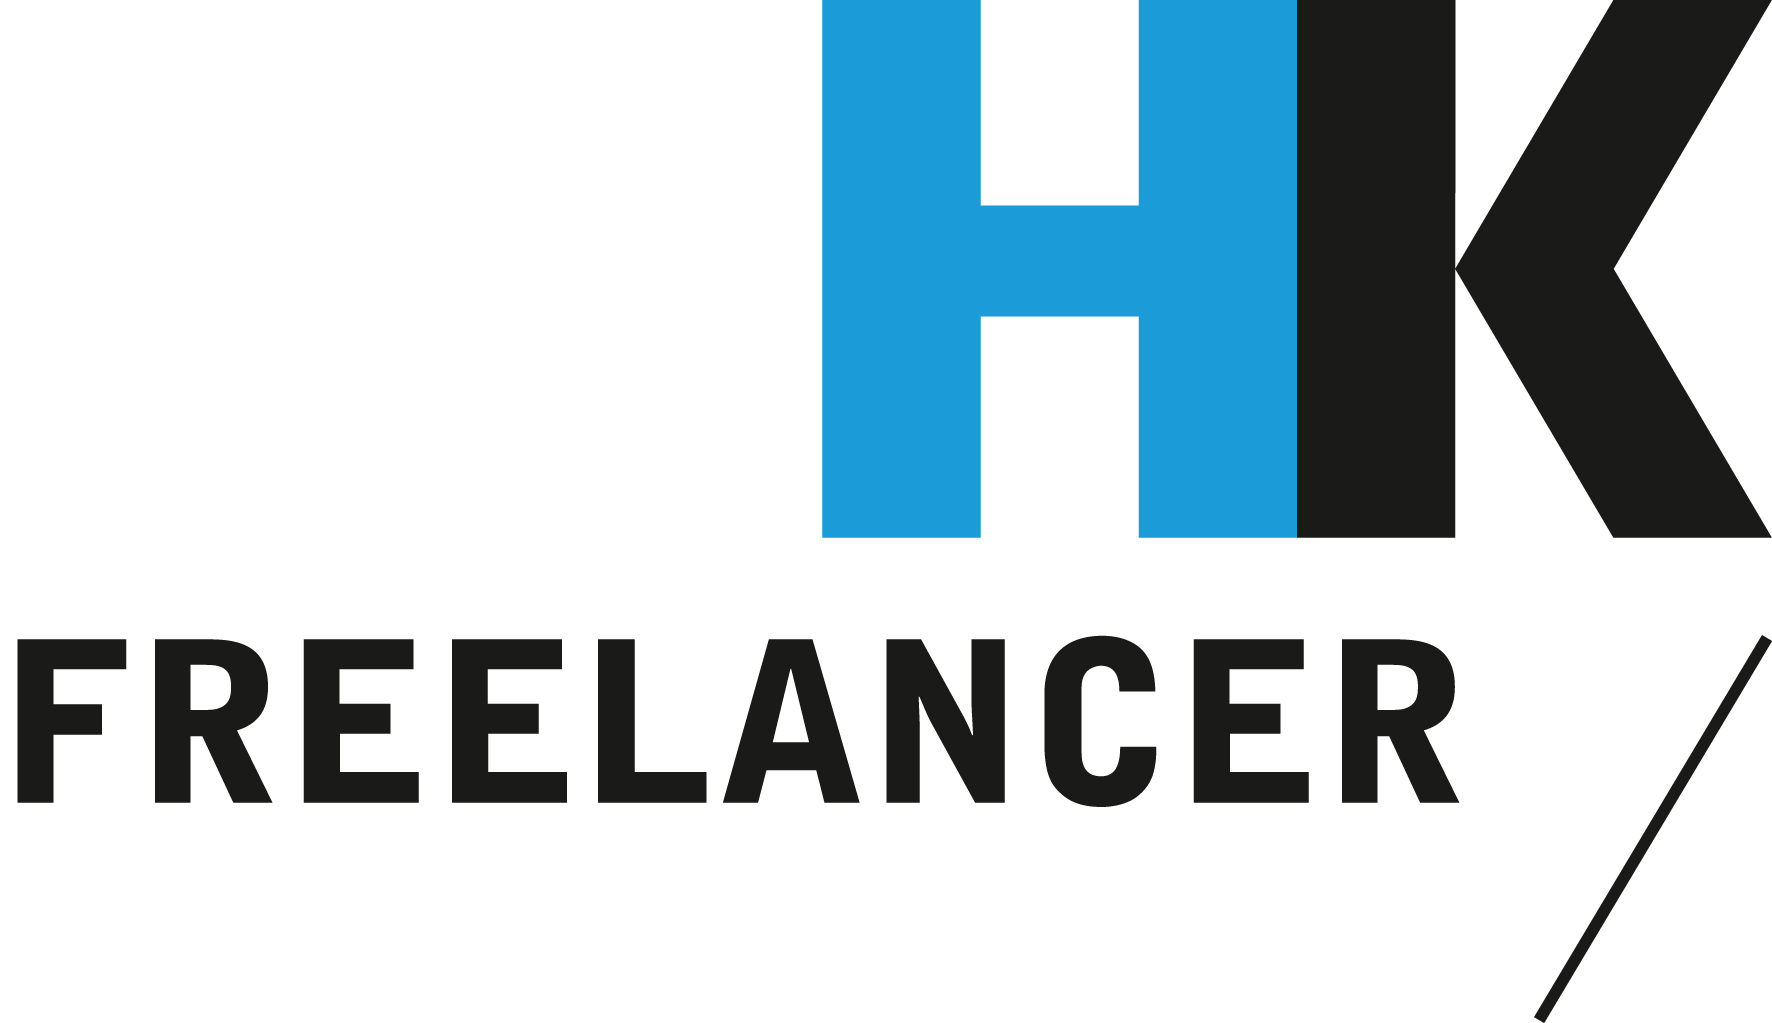 HK freelancer logo